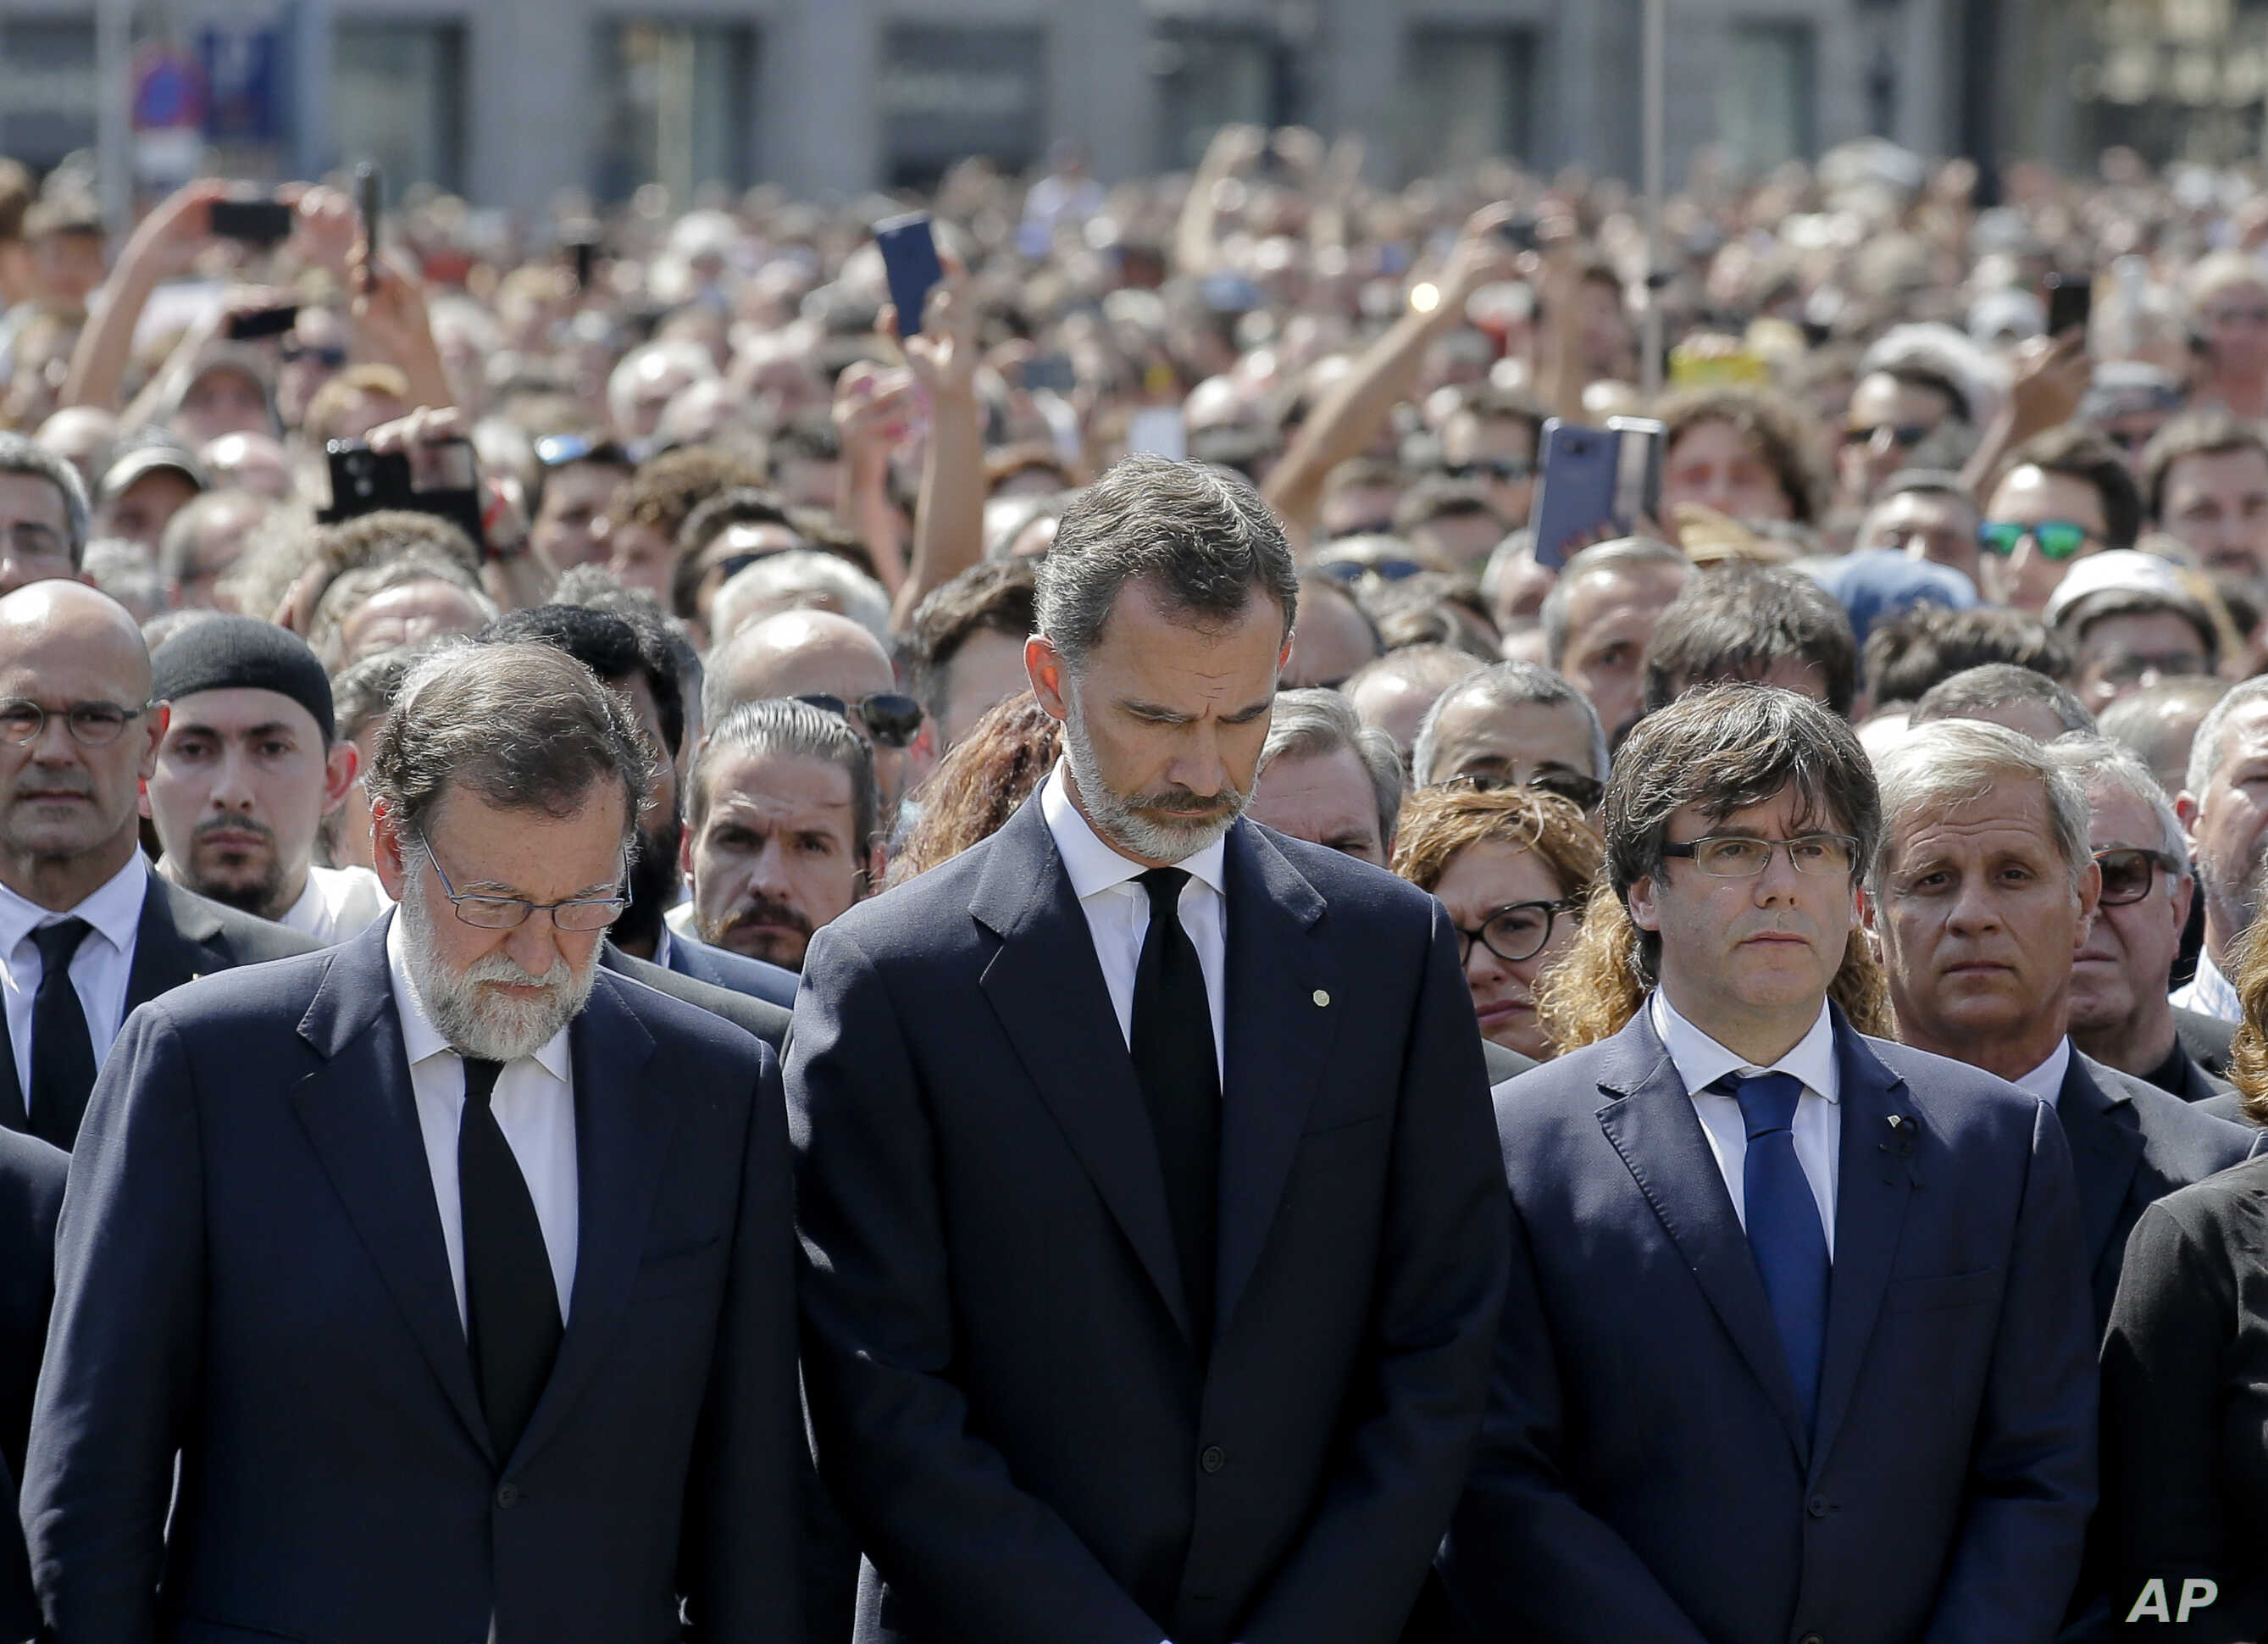 King Felipe of Spain, center, Prime Minister Mariano Rajoy, center left, and Catalonia regional President Carles Puigdemont, center right, join people gathered for a minute of silence in memory of the terrorist attacks victims in Las Ramblas, Barcelo...